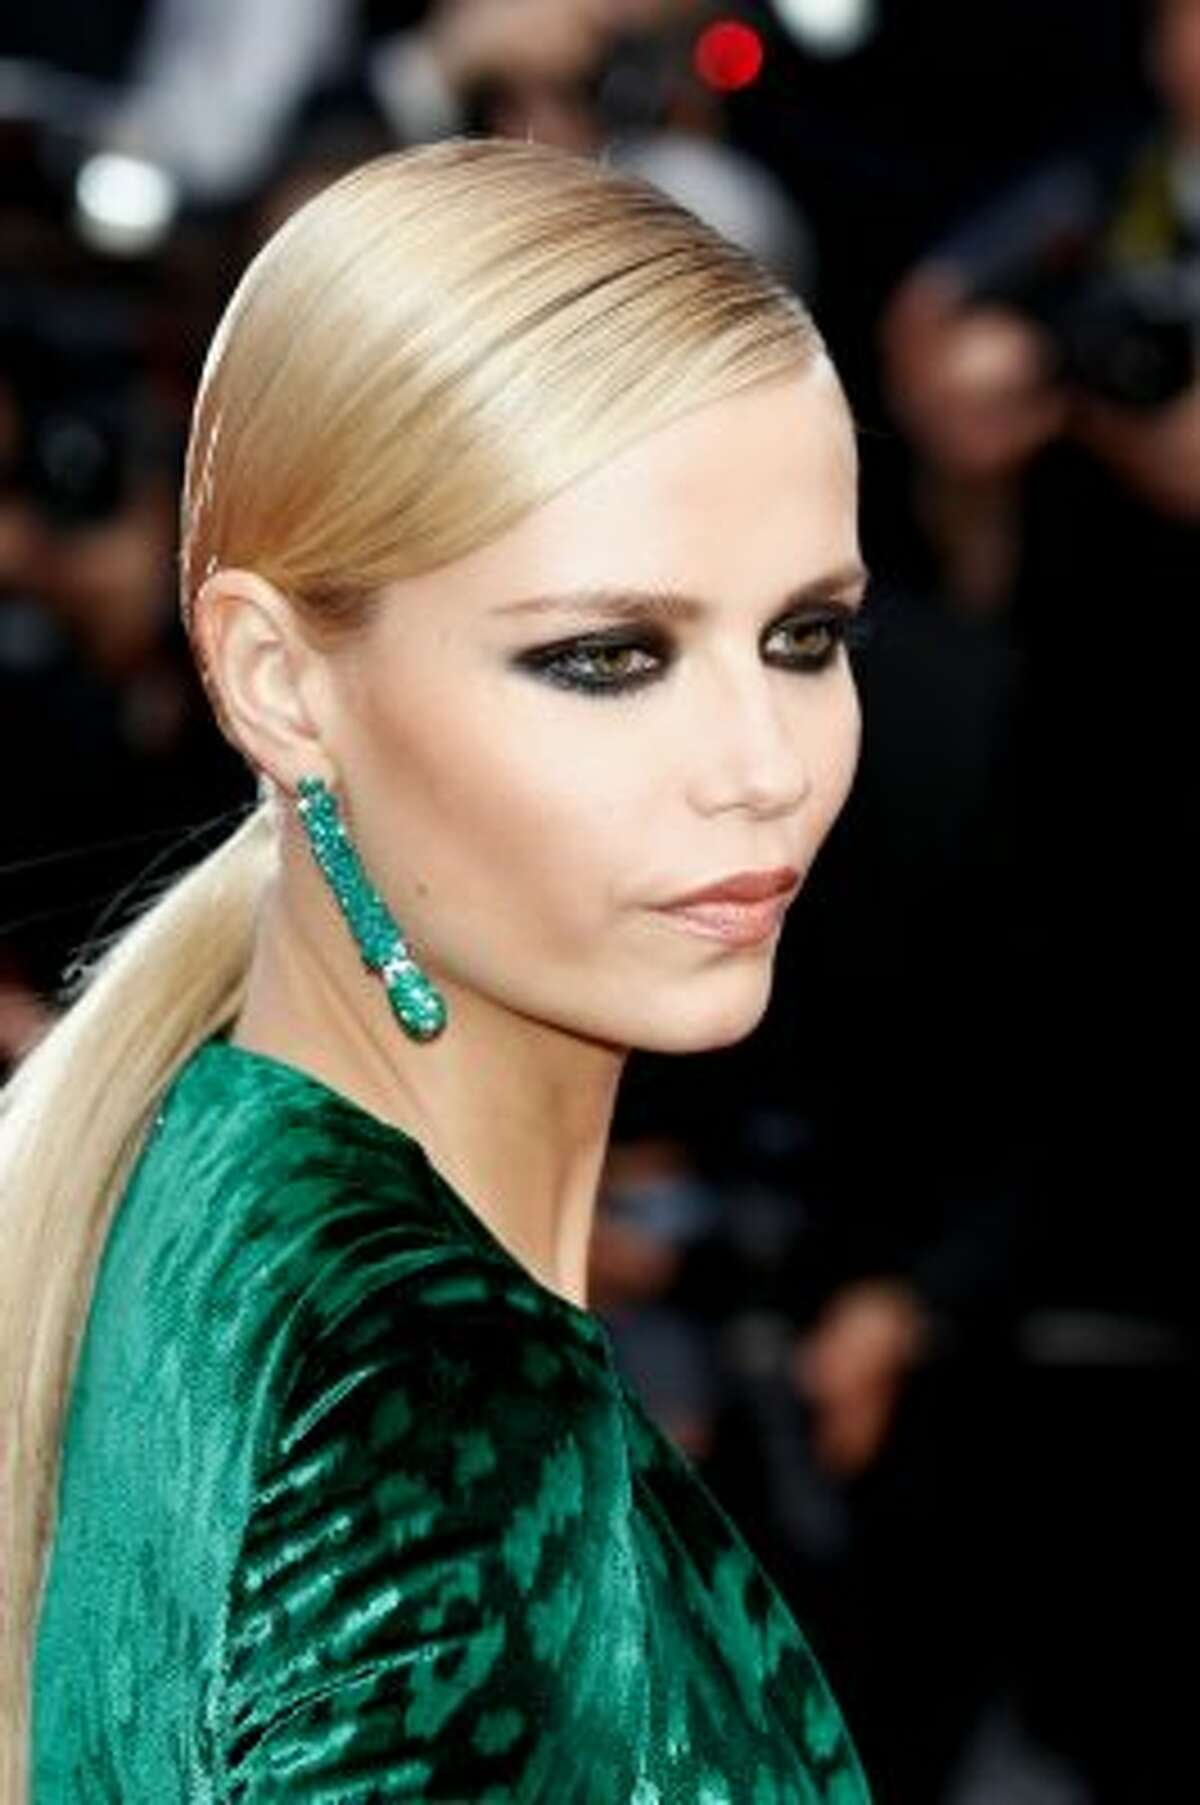 Striking in green: Natasha Poly attends the